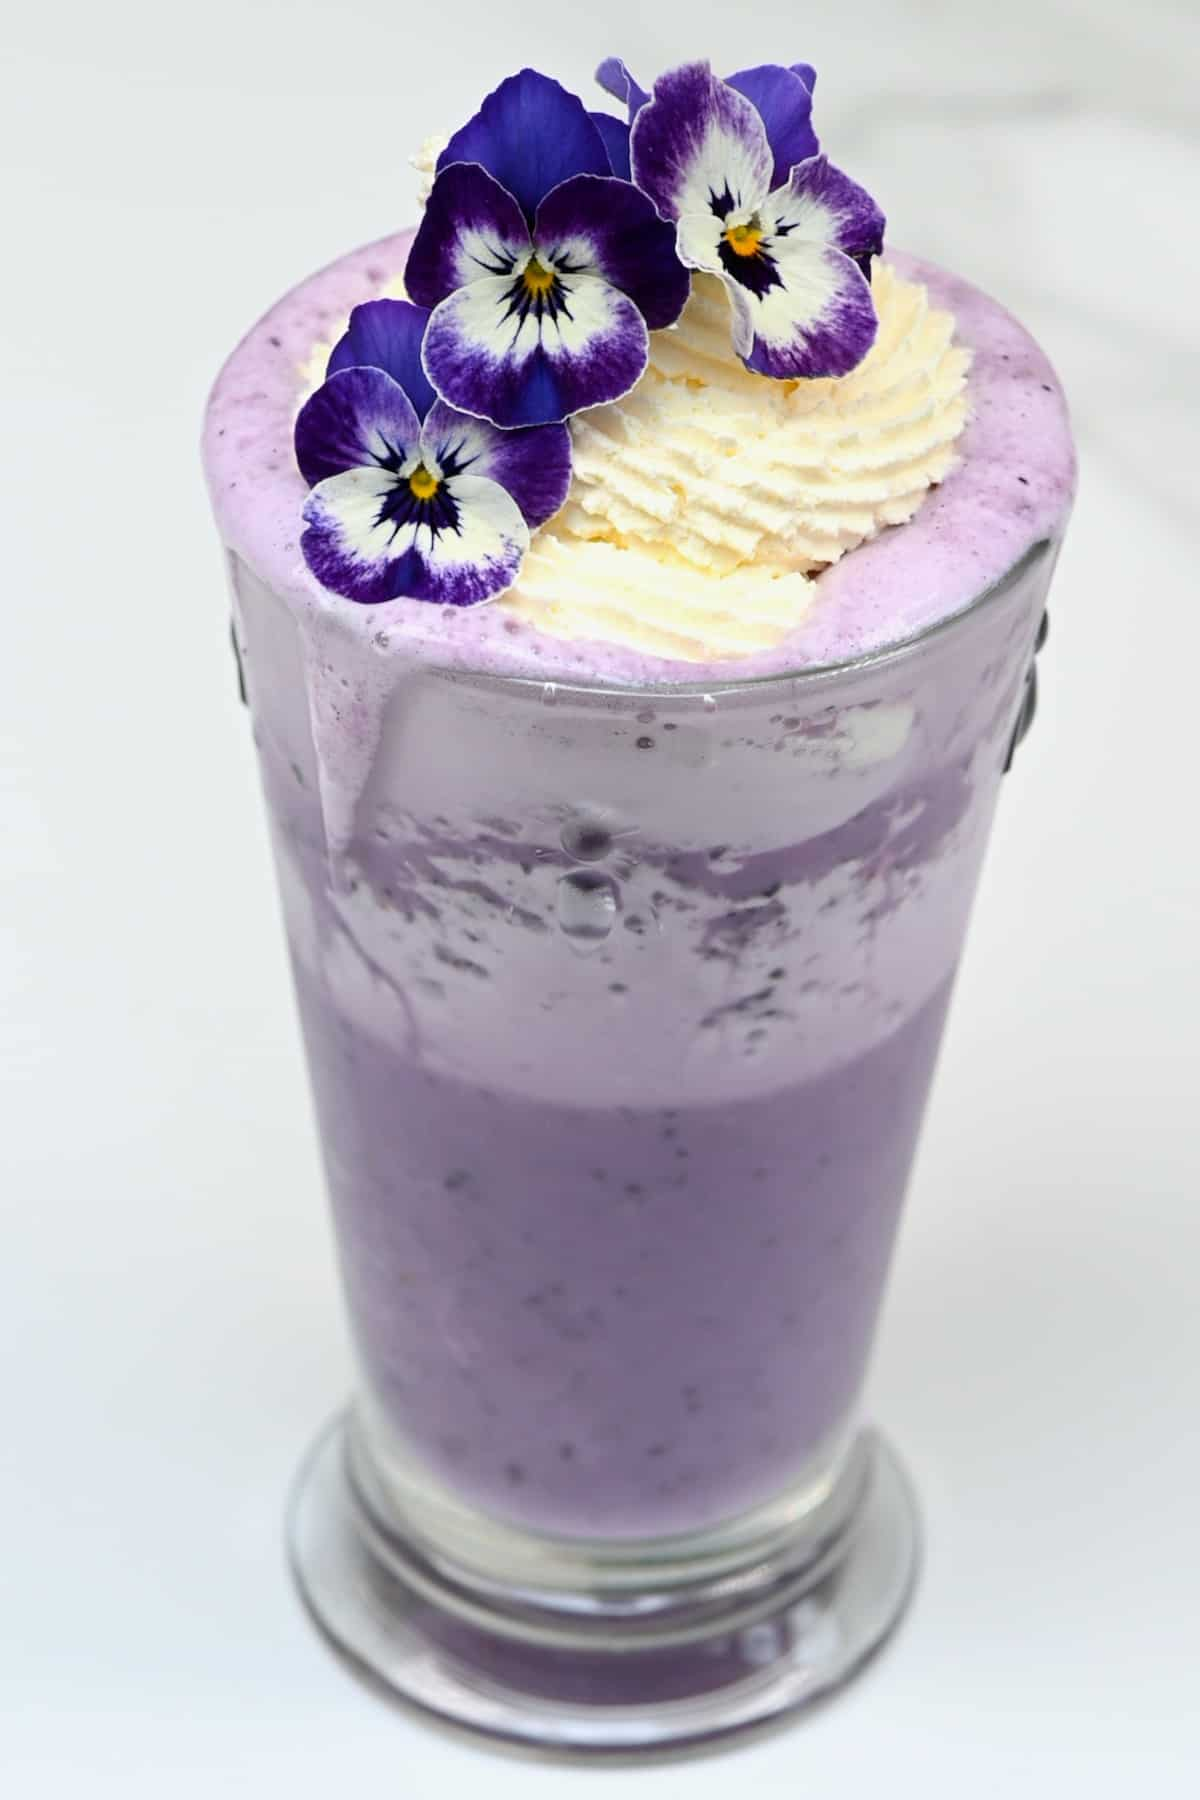 Blueberry ube frappuccino decorated with edible flowers